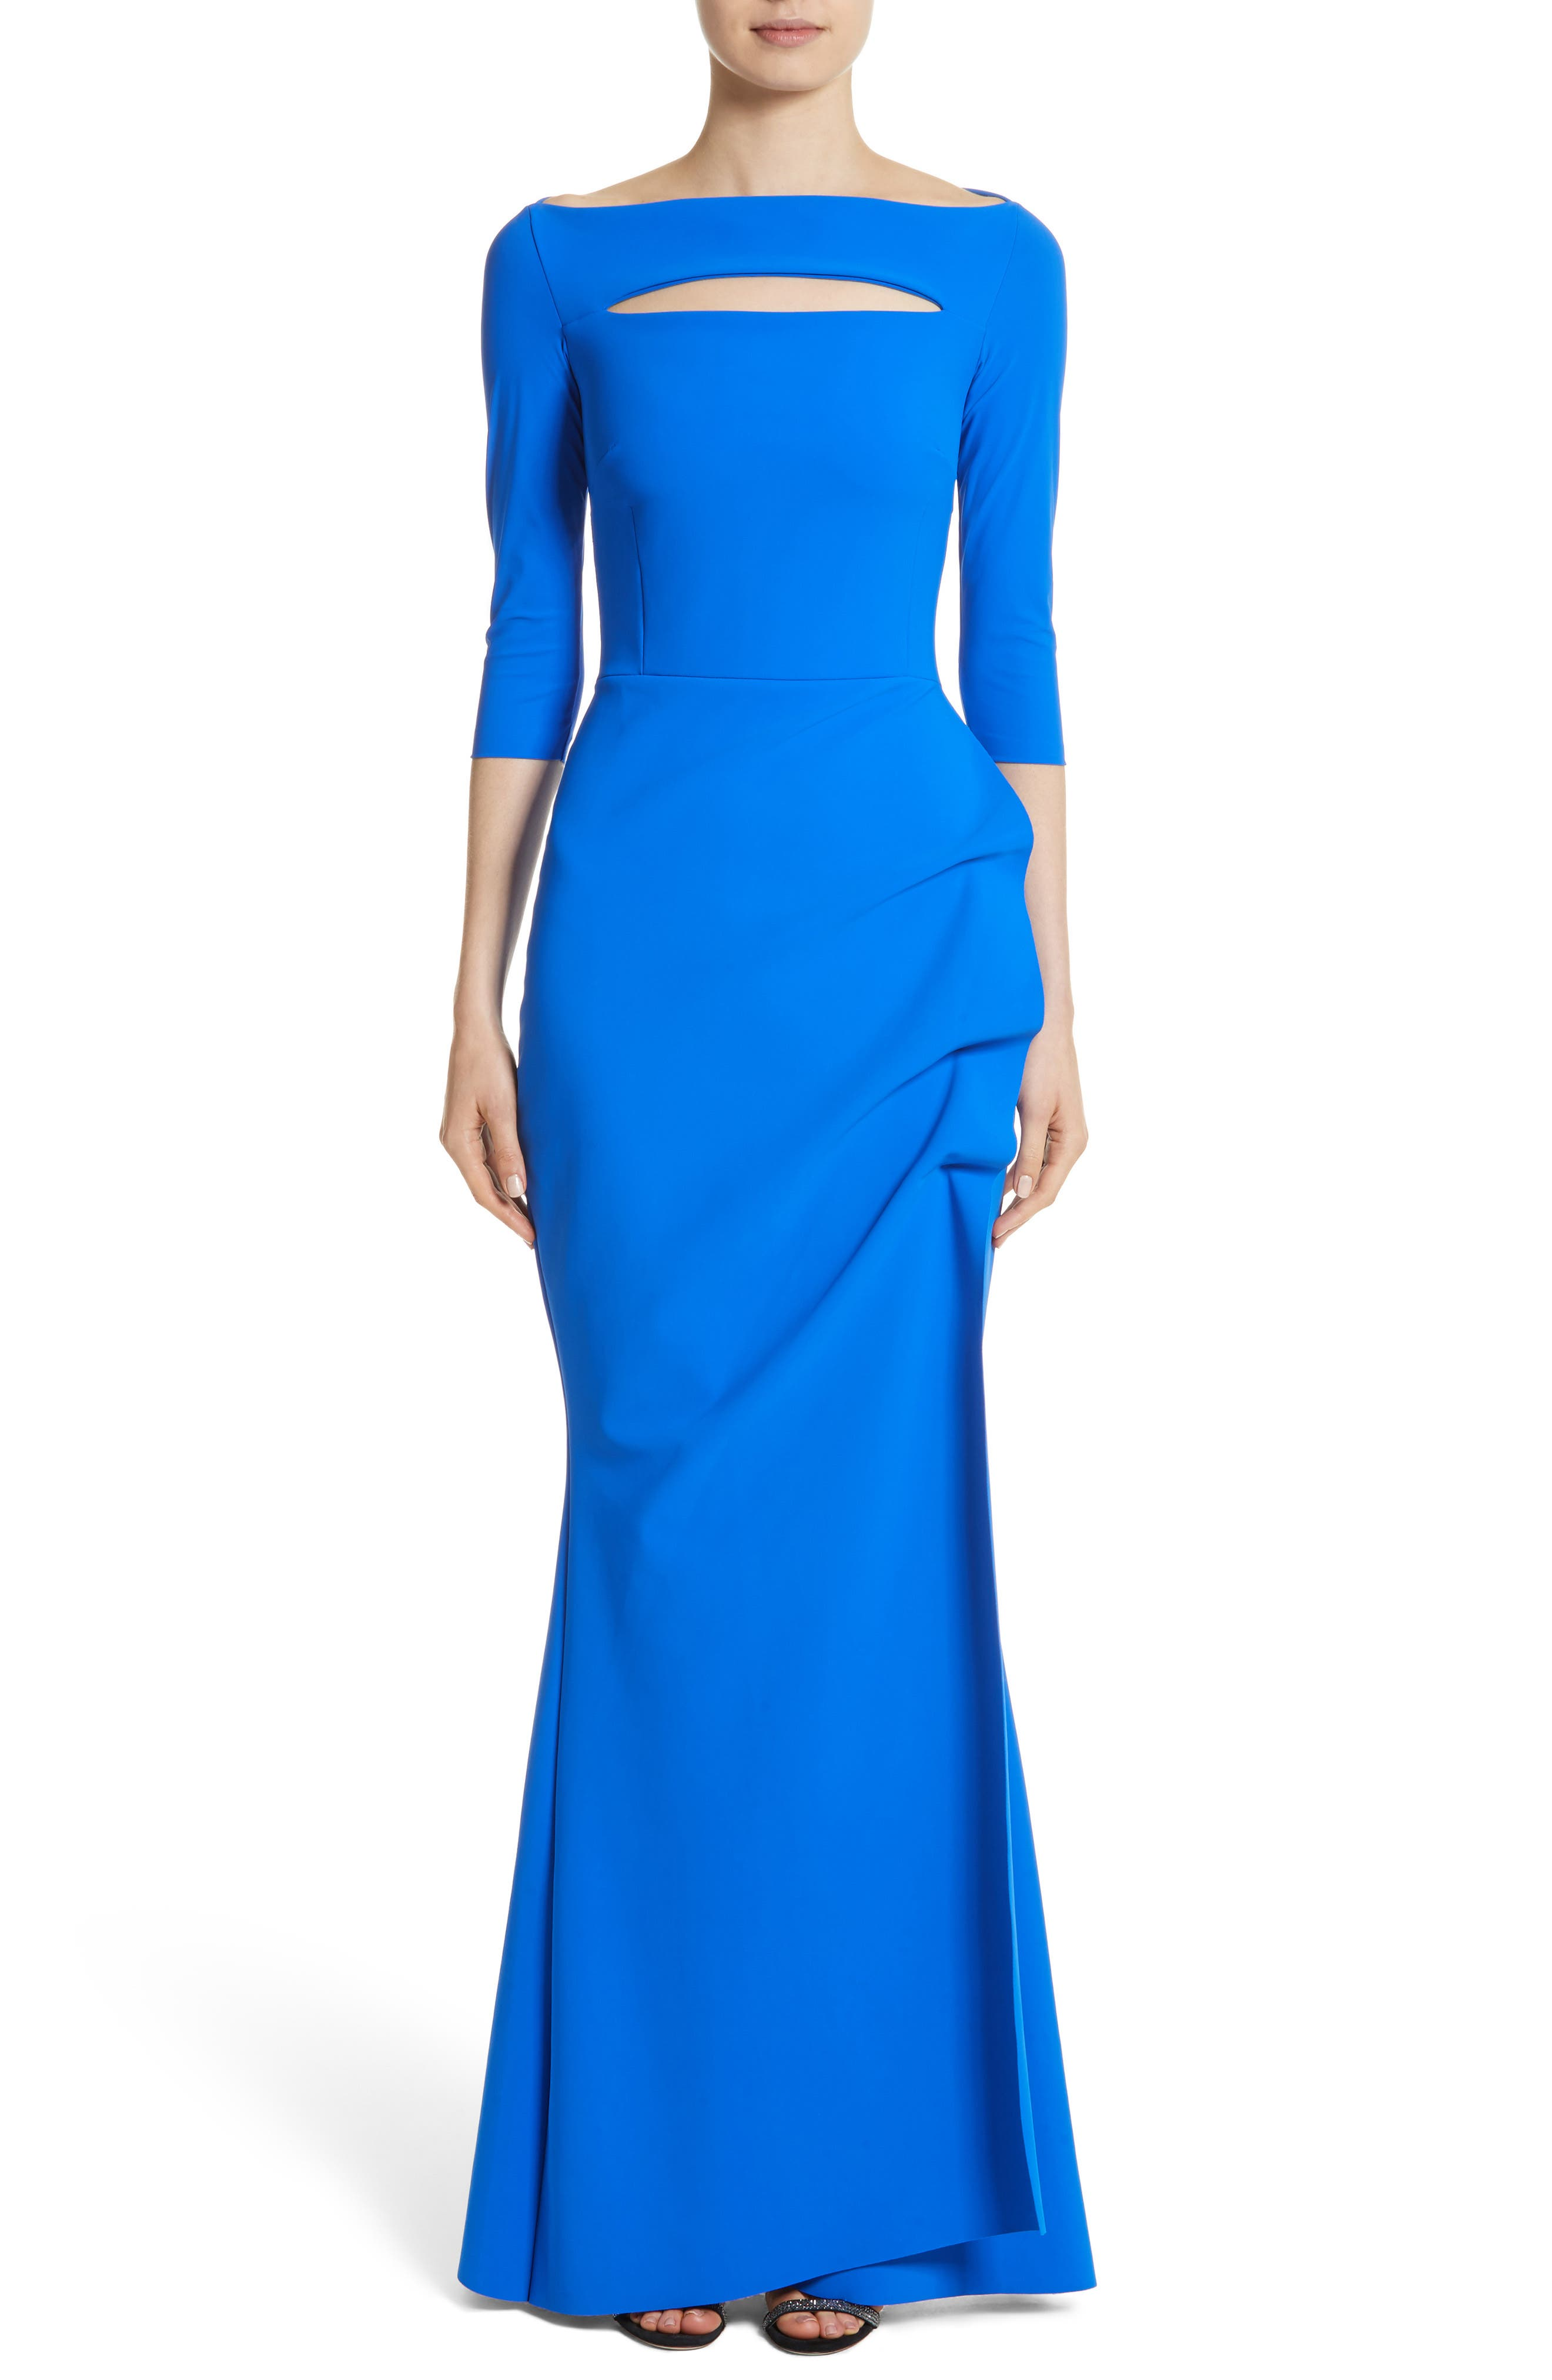 Chiara Boni La Petite Robe Slit Bodice Drape Front Gown, US / 42 IT - Blue